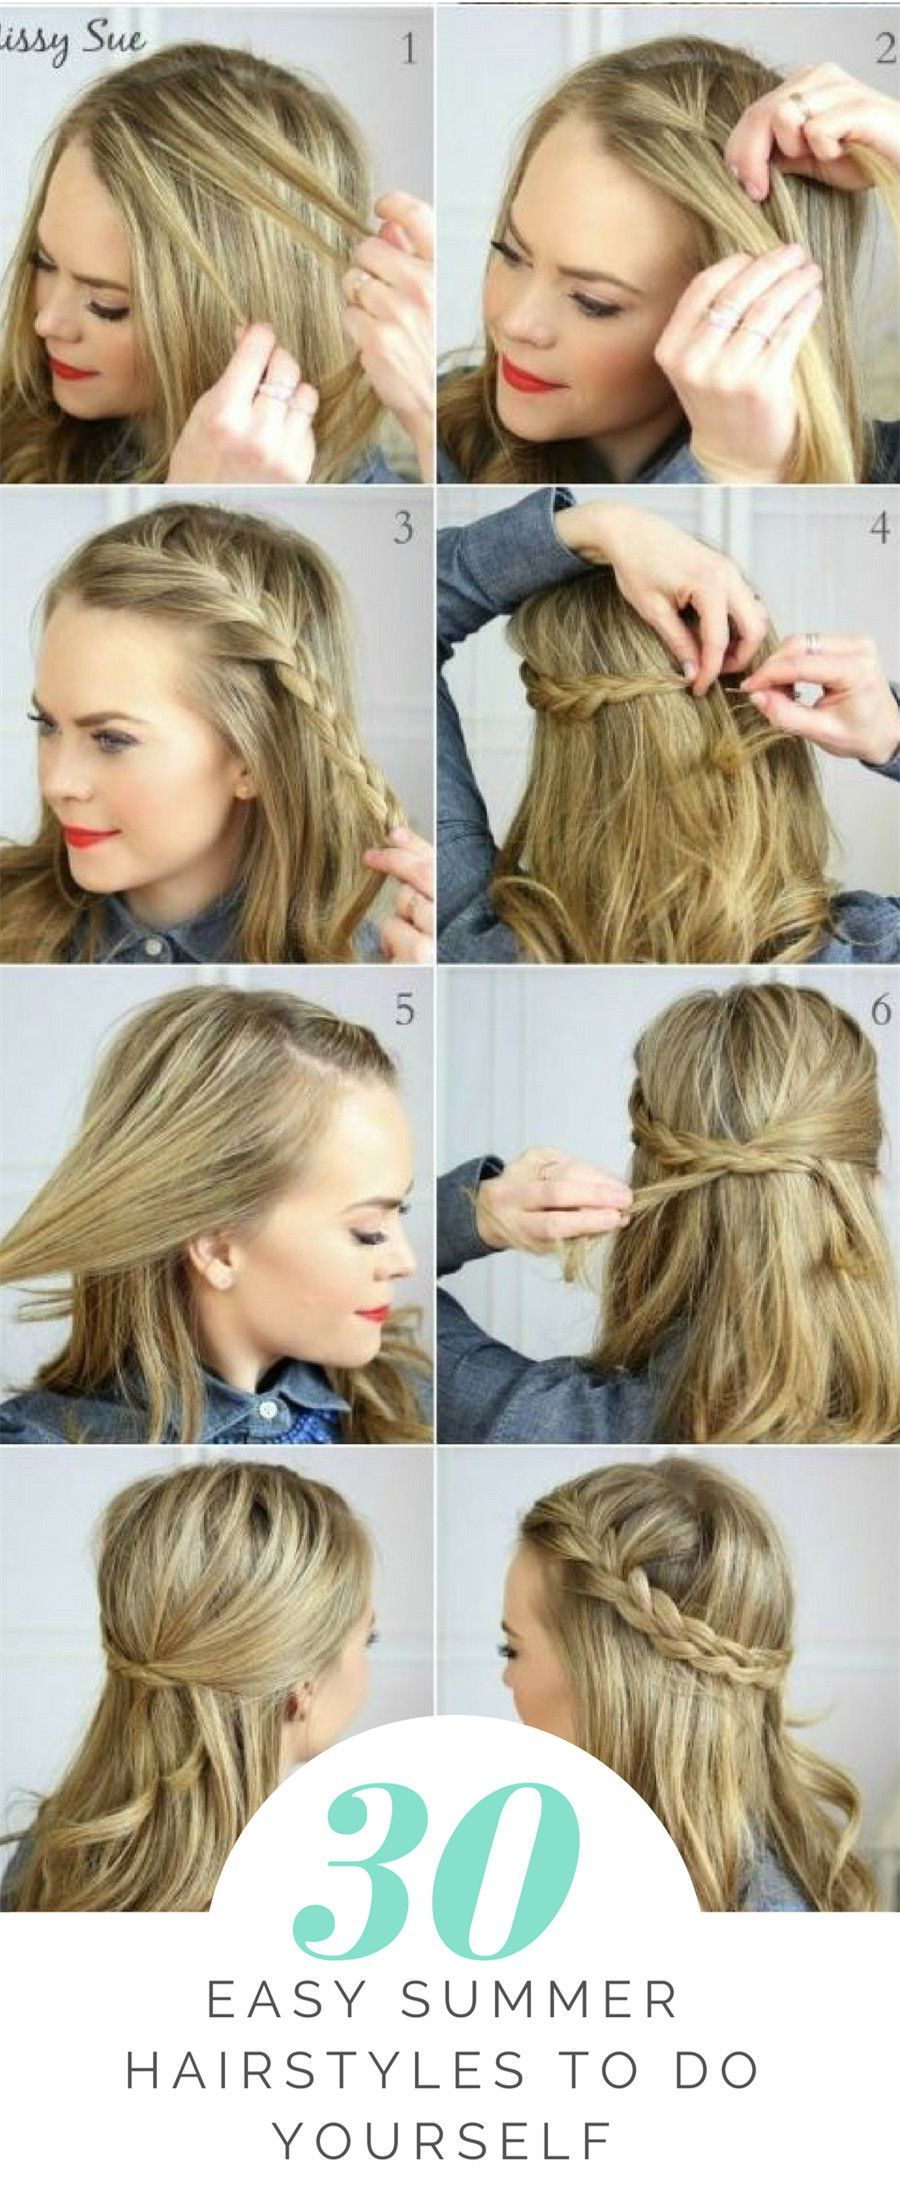 Best Hairstyle For A 11 Year Old Woman  Easy hairstyles for